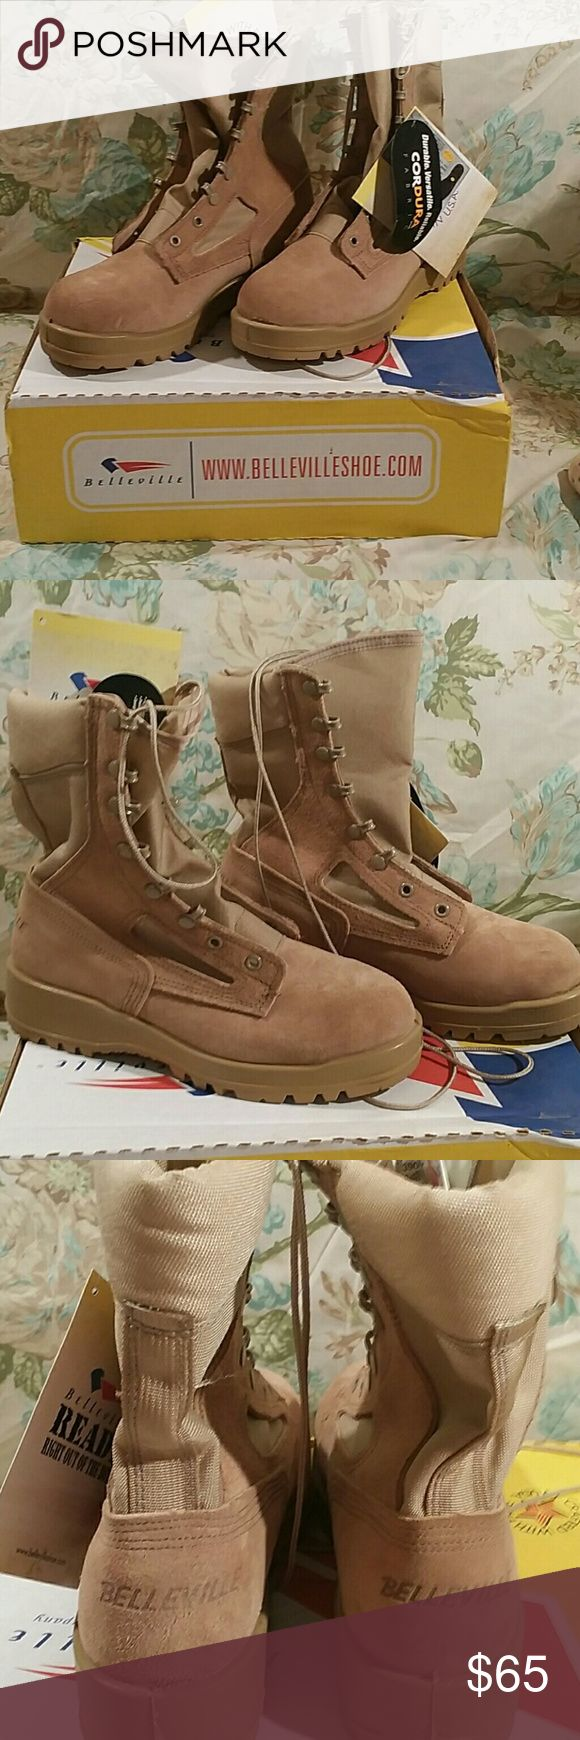 WOMENS MILITARY COMBAT BOOTS Brand new pair of women's desert combat boots.  These boots are $220 on the manufacturer's website.  I have a pair and they are surprisingly comfortable.  NWT. BELLEVILLE Shoes Combat & Moto Boots